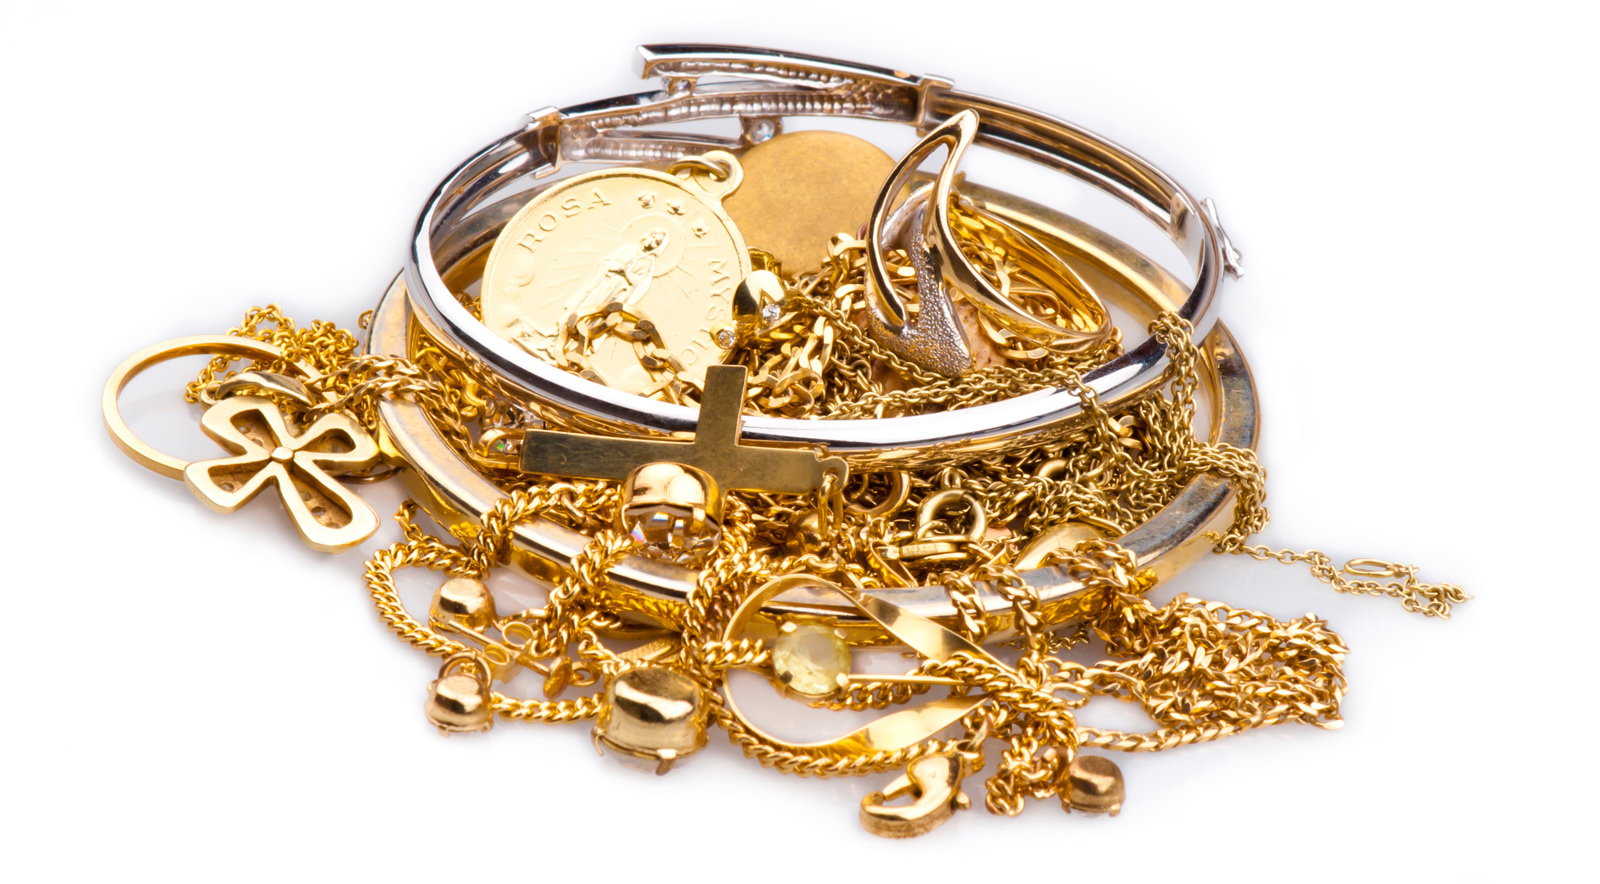 buy and sell used or broken jewelry new orleans